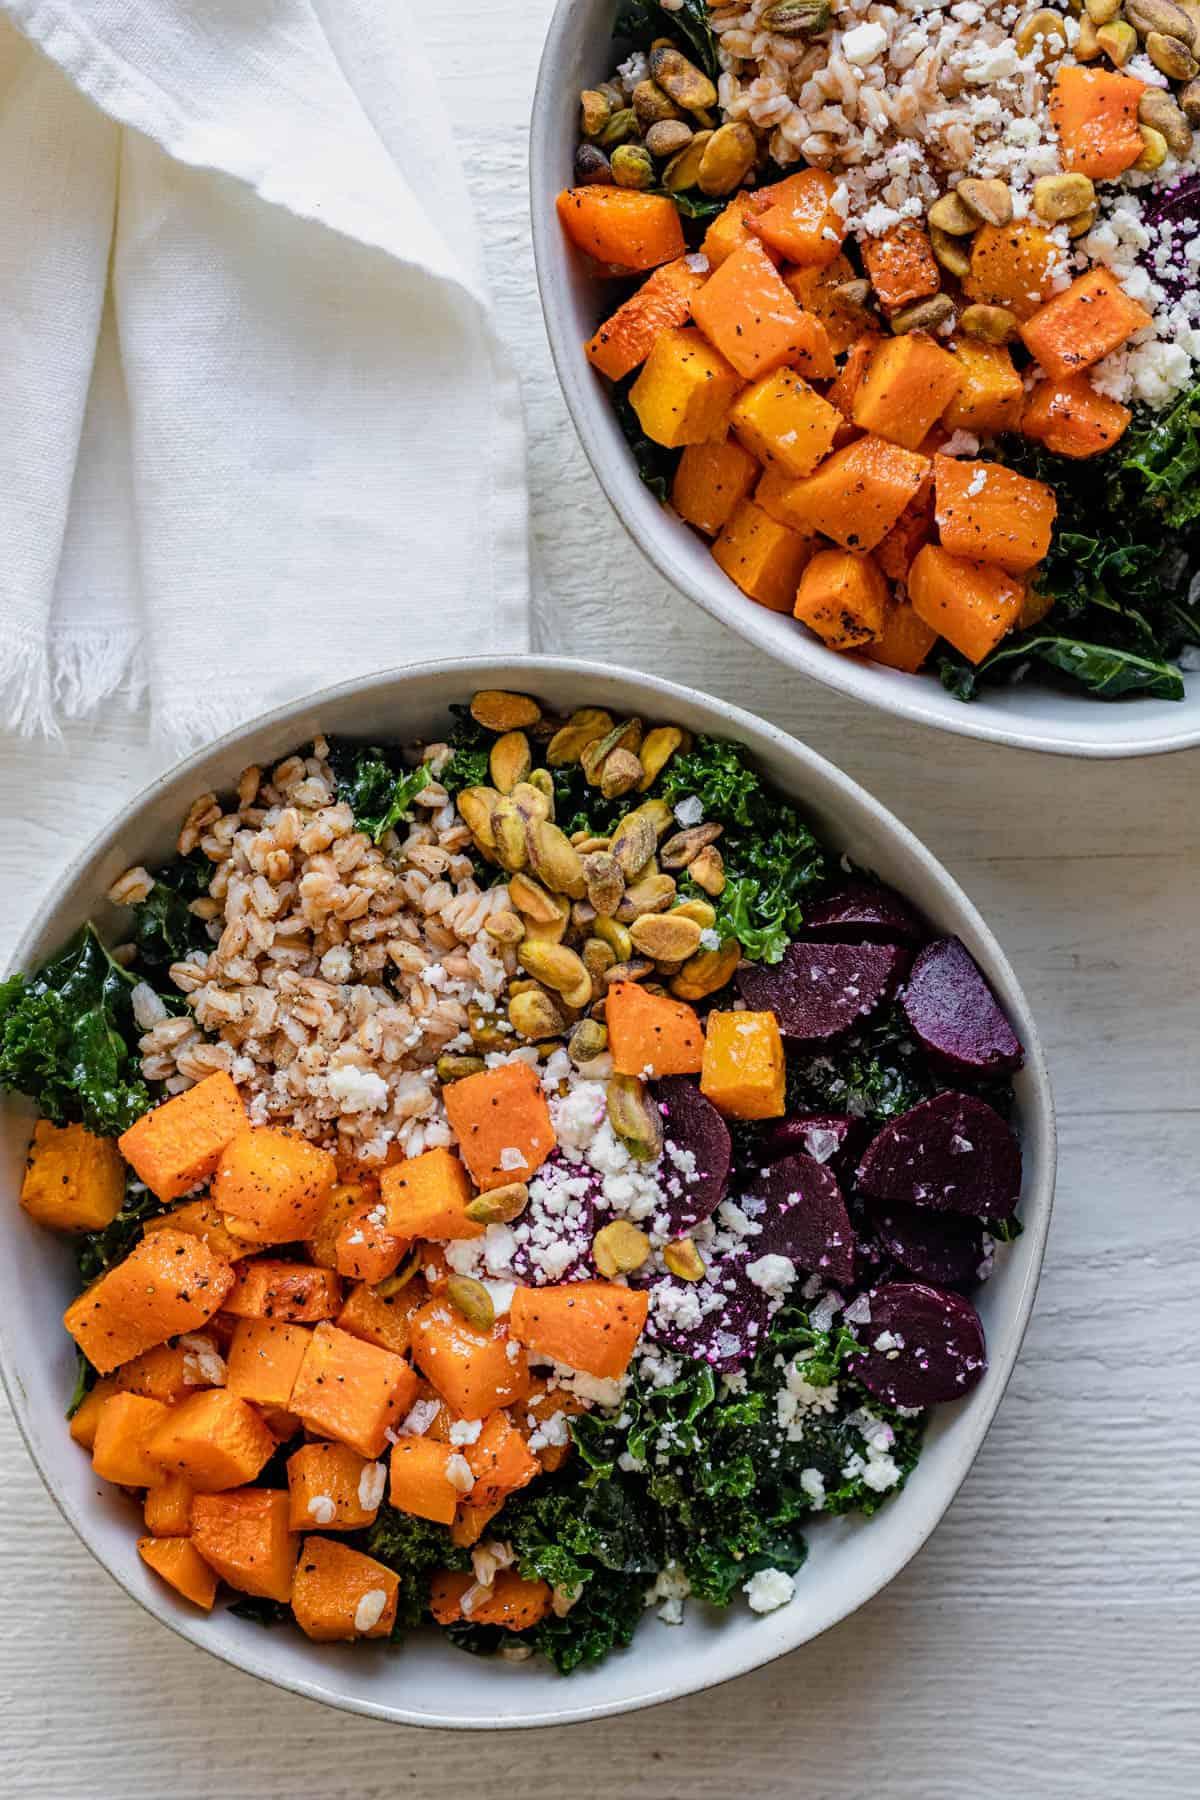 2 fall grain bowls made with butternut squash, kale, farro, beets, feta and pistachios